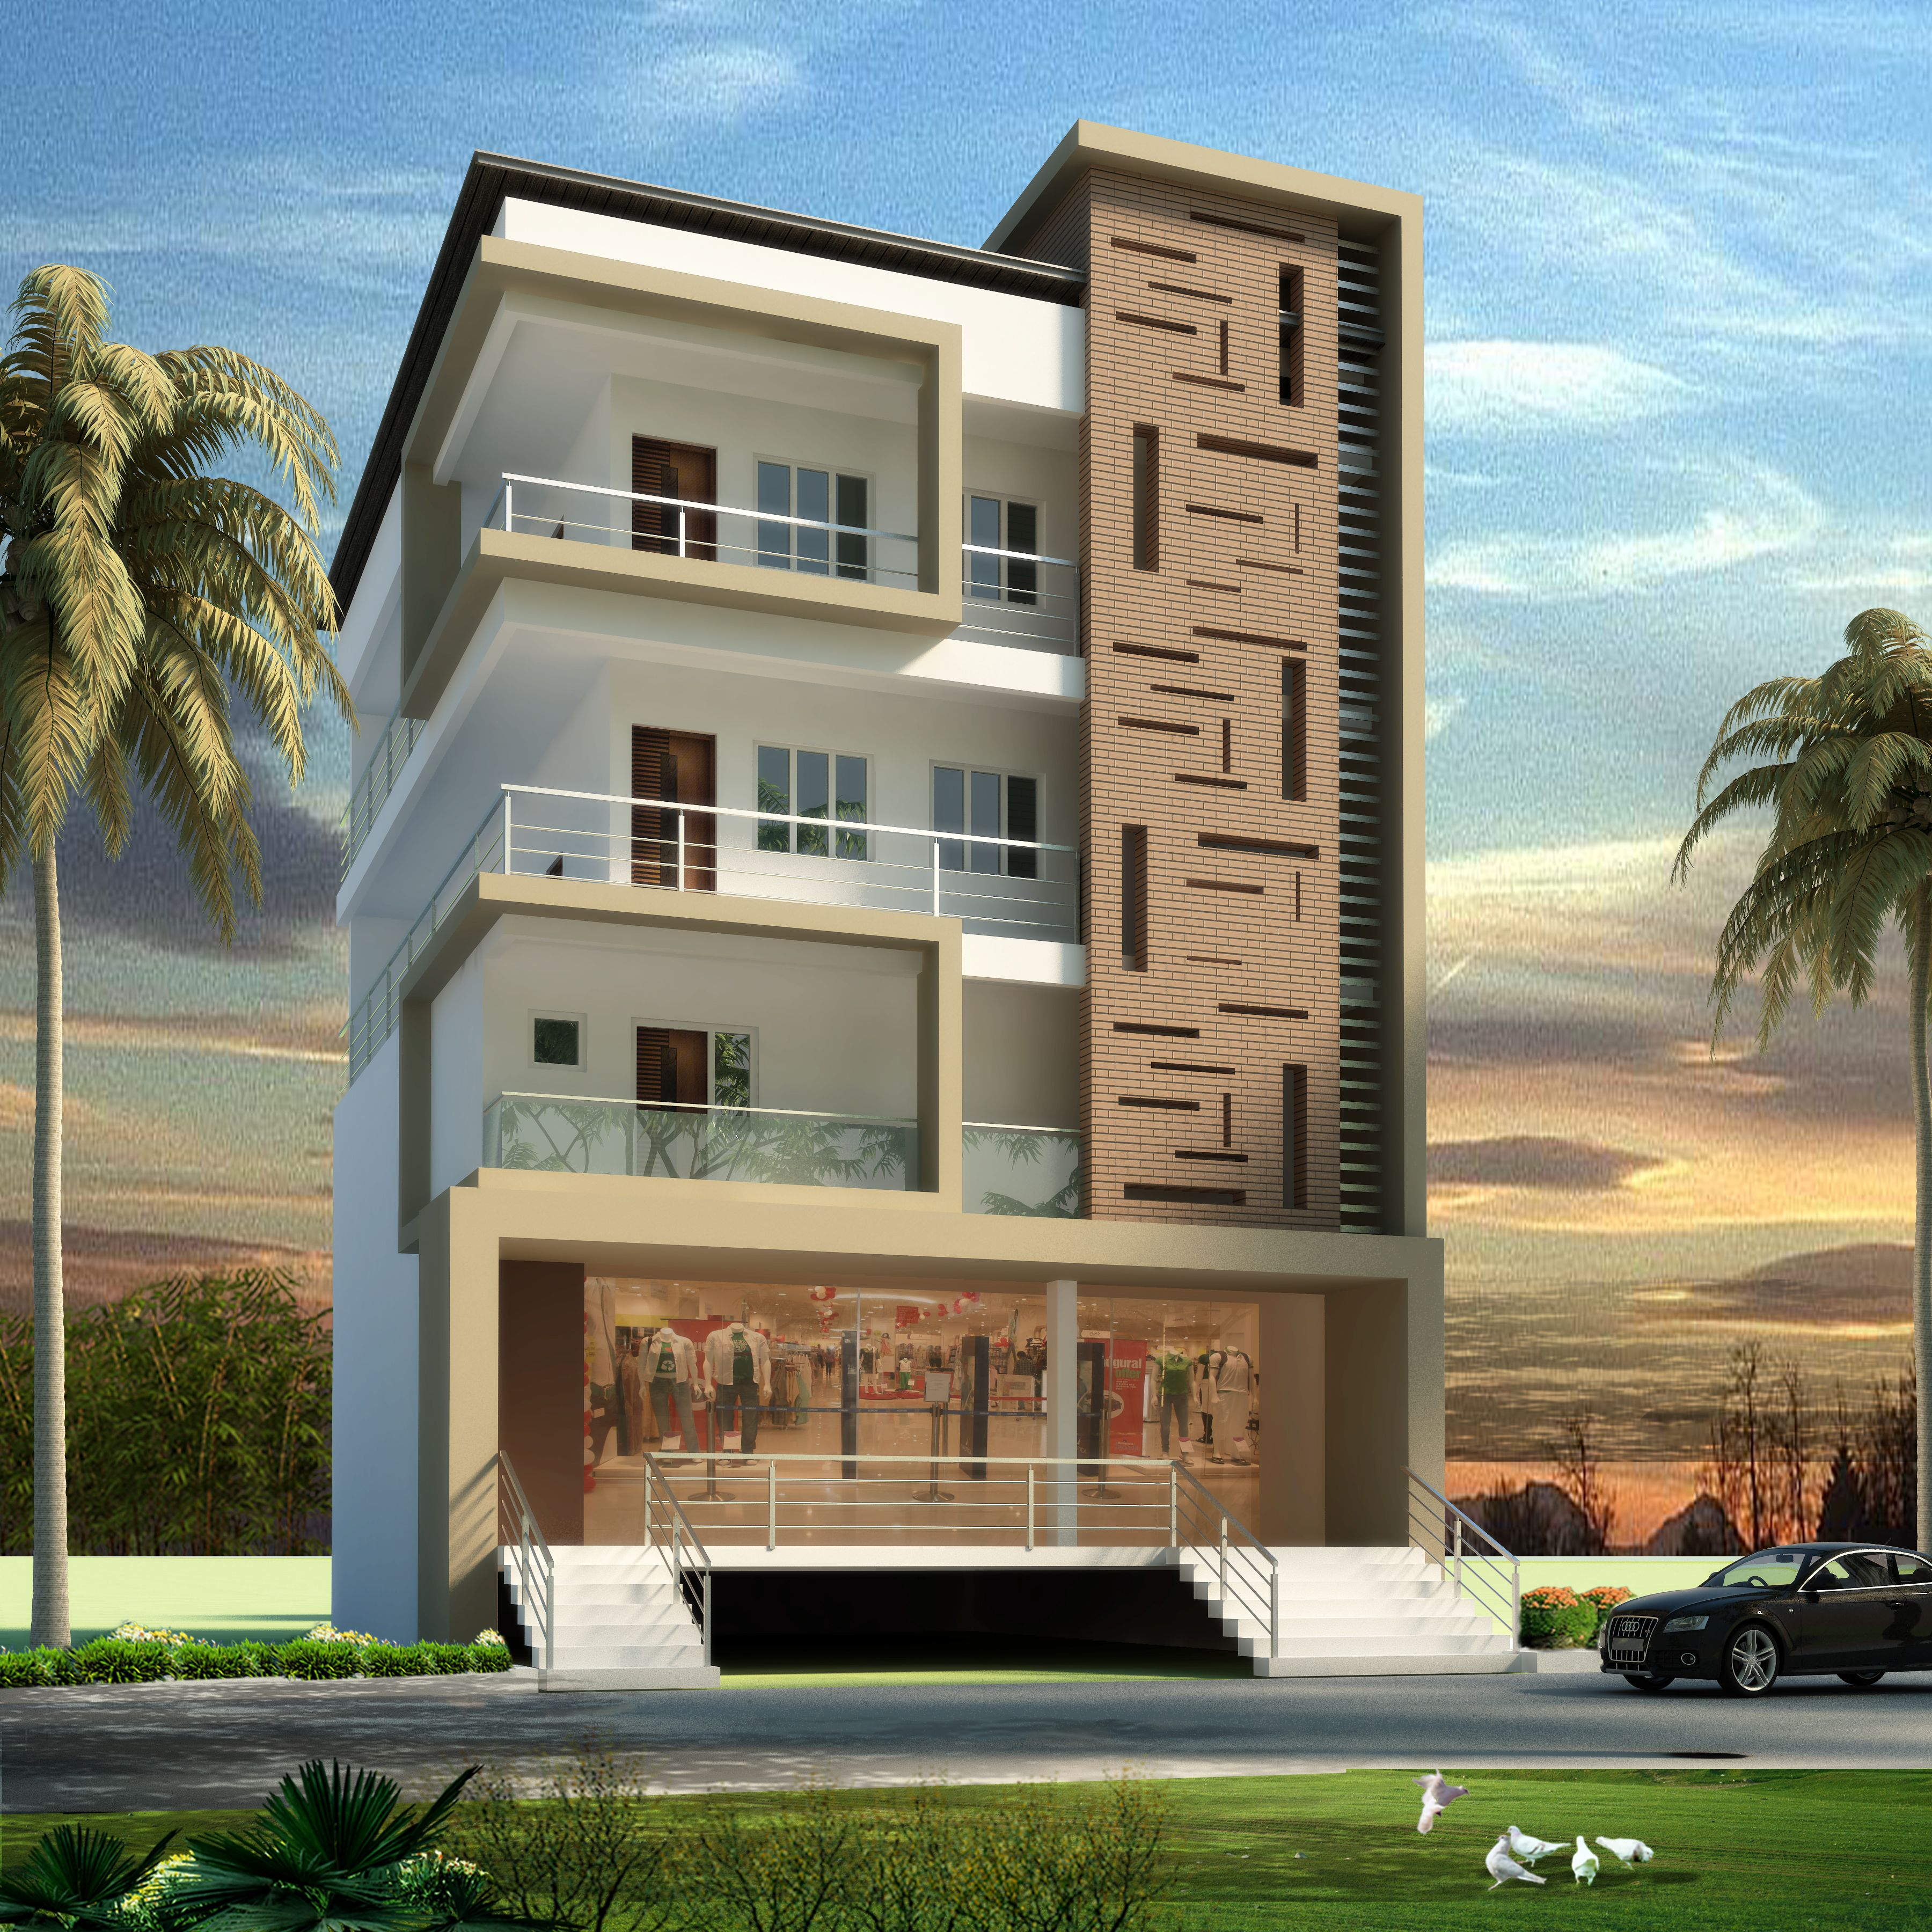 Apartment elevation design architectural design for Elevation design photos residential houses